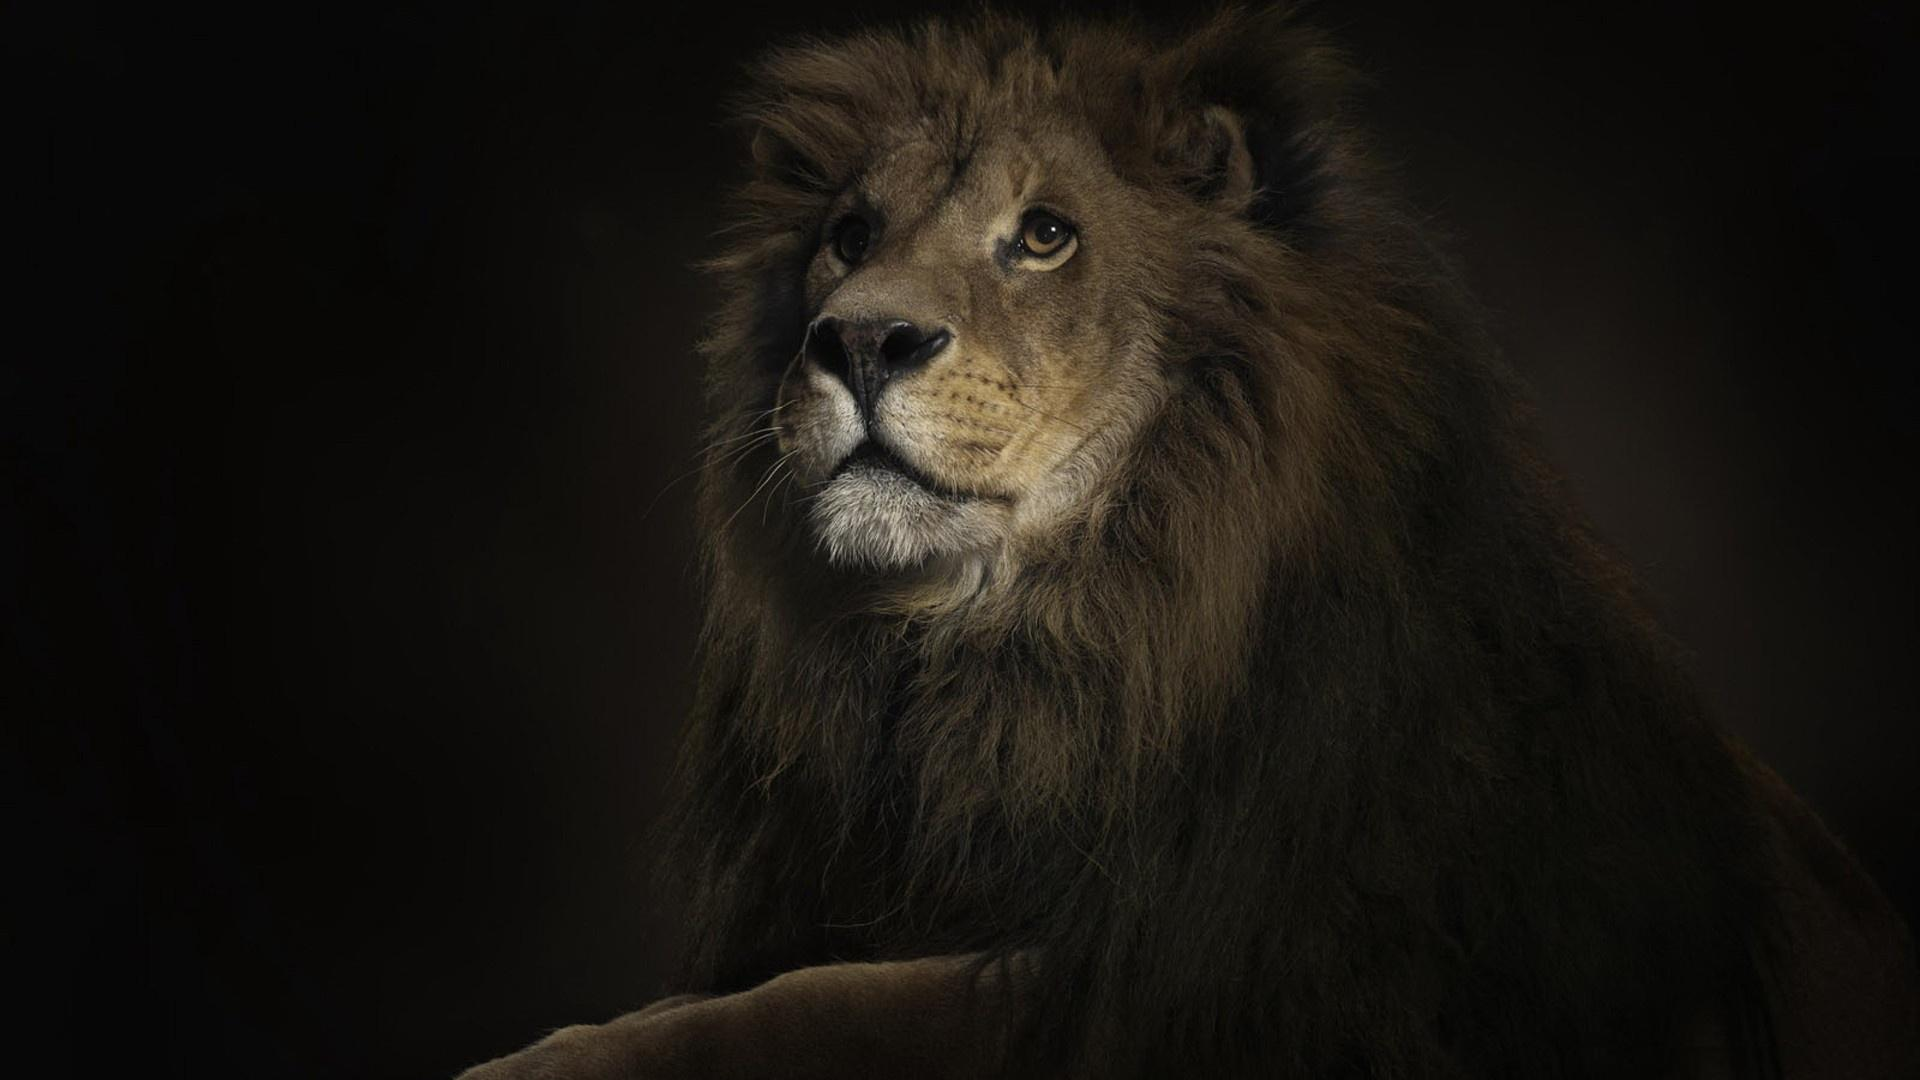 Wallpaper download download - 788 Lion Wallpapers Lion Backgrounds